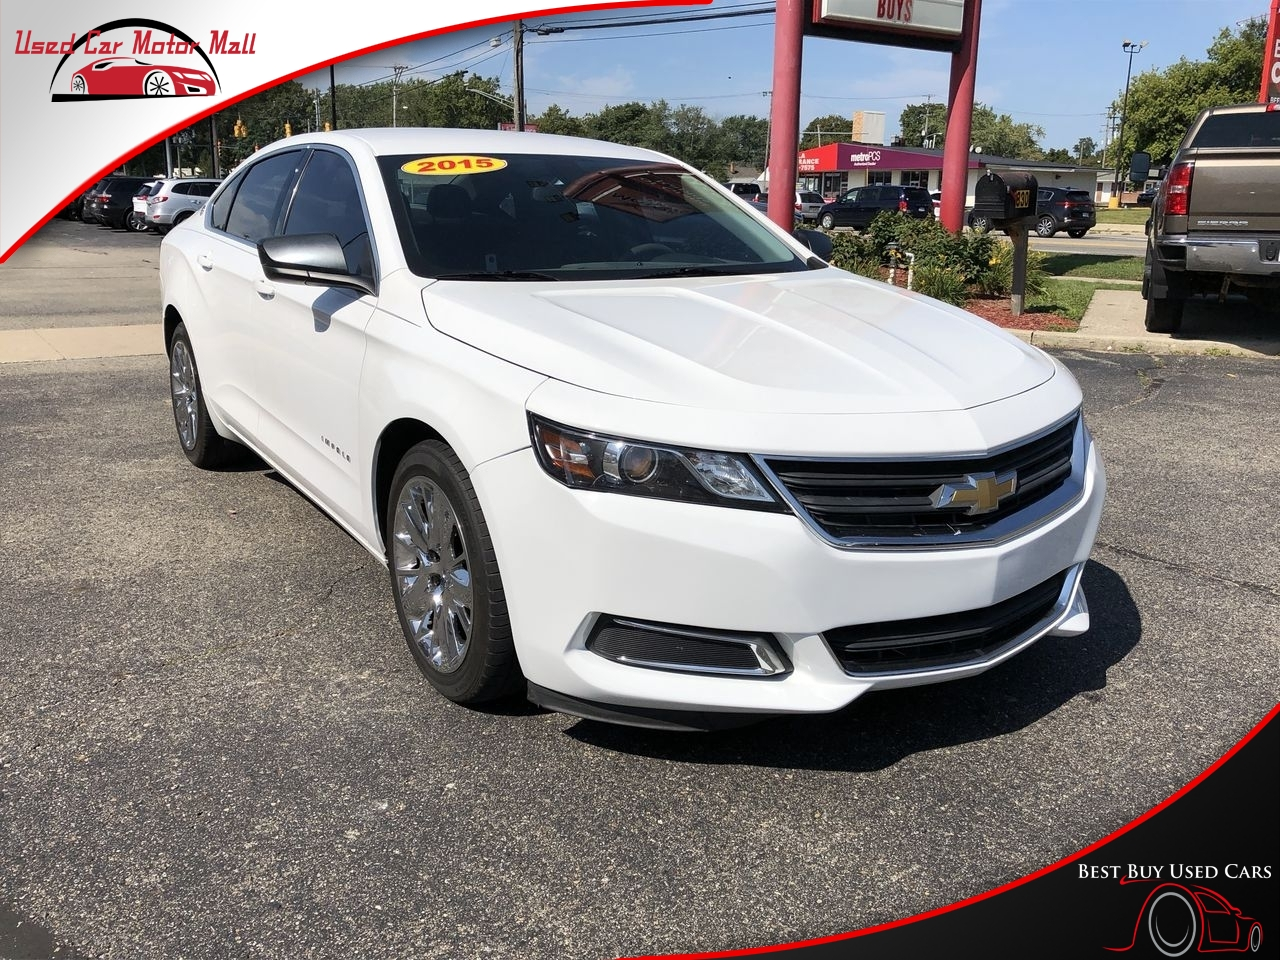 2014 Chevrolet Impala LT, 211153-2, Photo 1